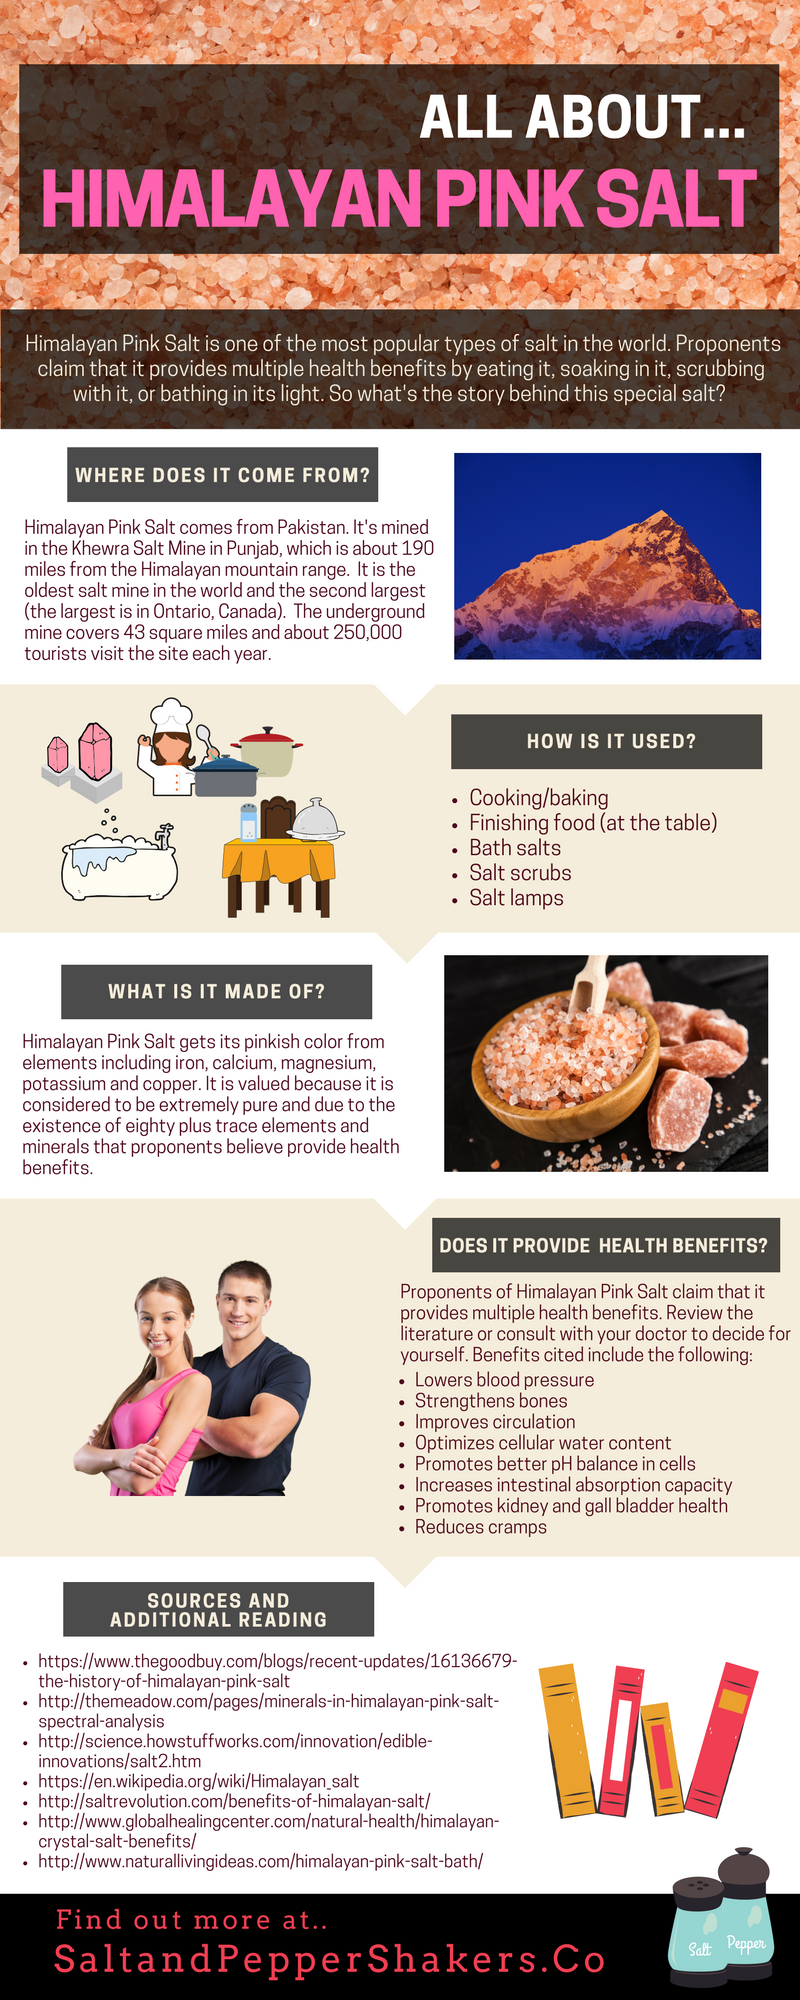 Himalayan Salt Lamp Benefits Wikipedia Beauteous All About Himalayan Pink Salt Infographic  Himalayan Pink Salt Inspiration